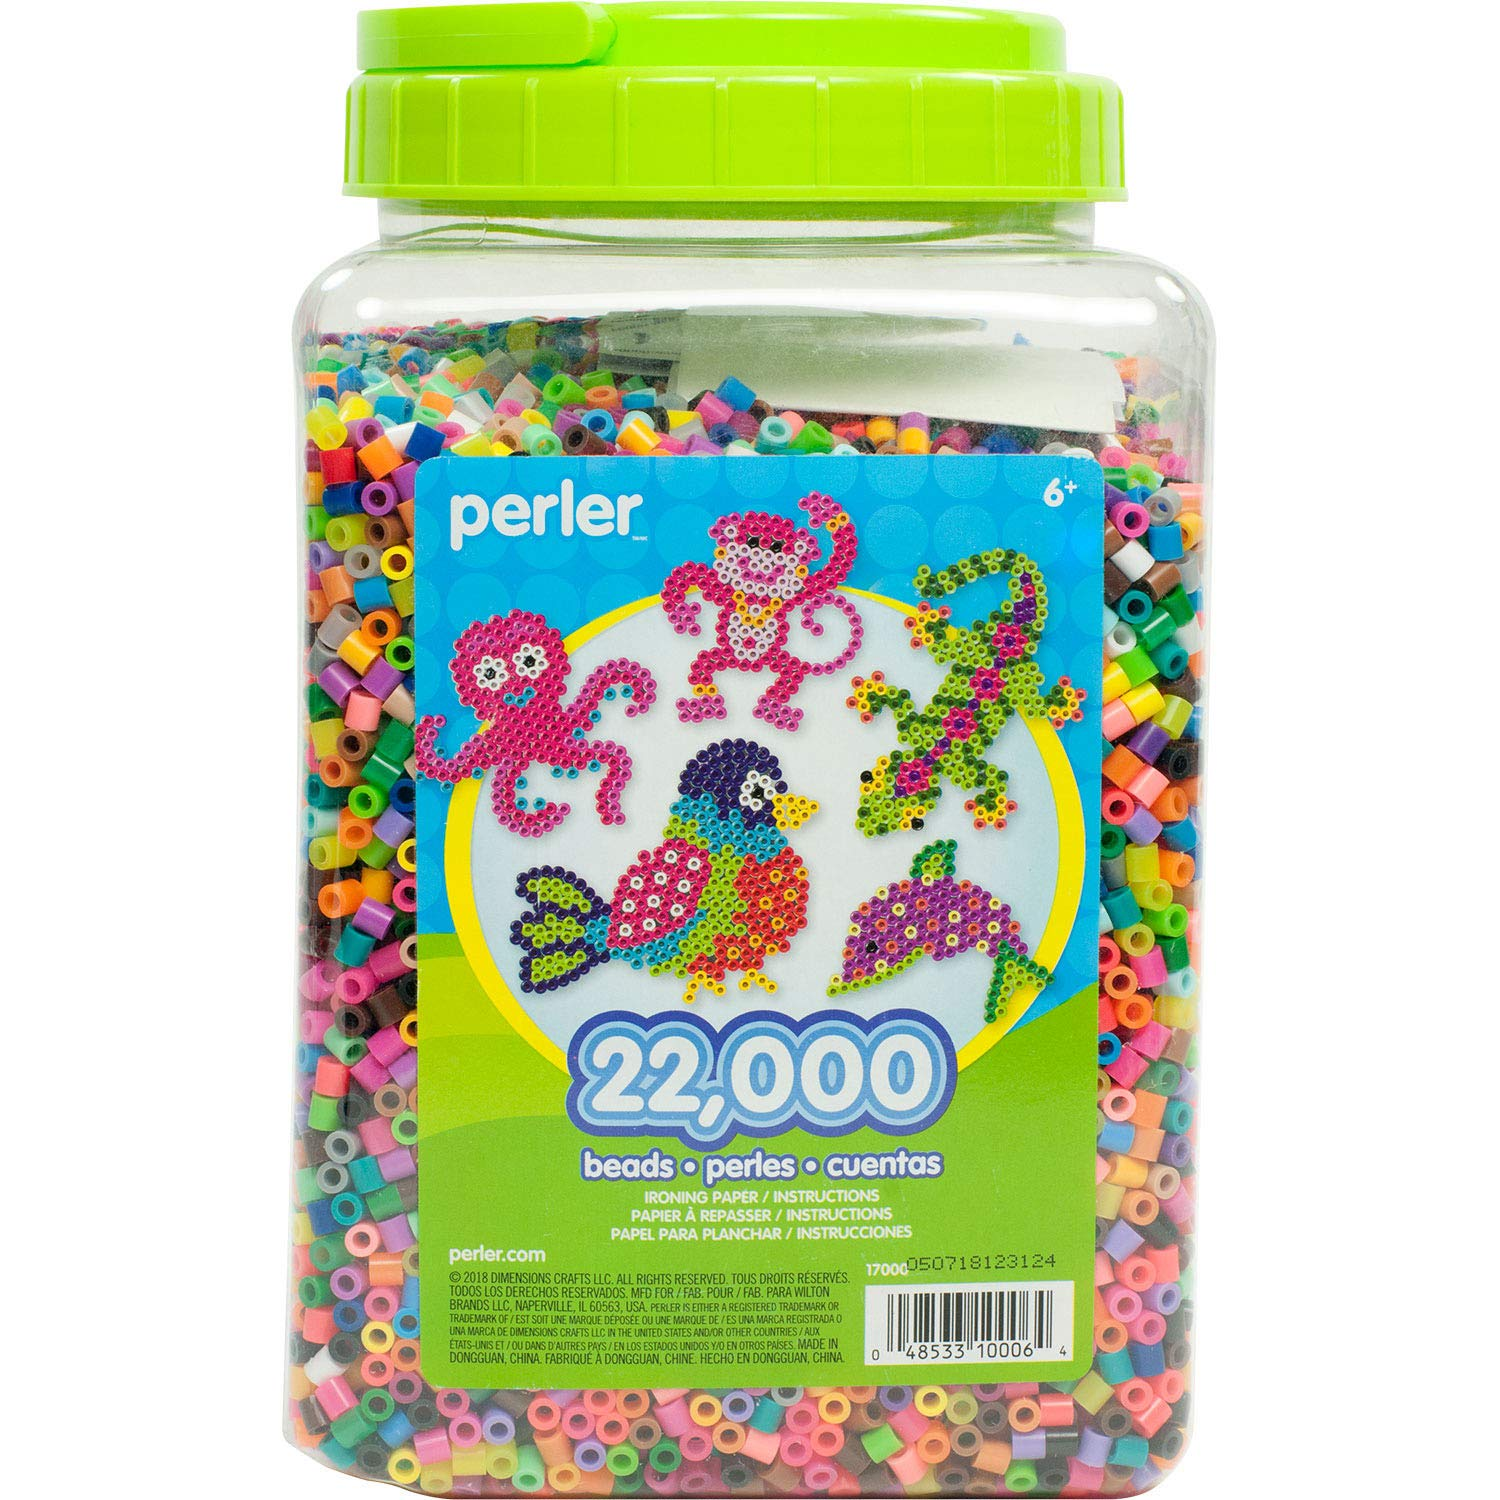 Perler Beads Bulk Assorted Multicolor Fuse Beads for Kids Crafts, 22000 pcs by Perler